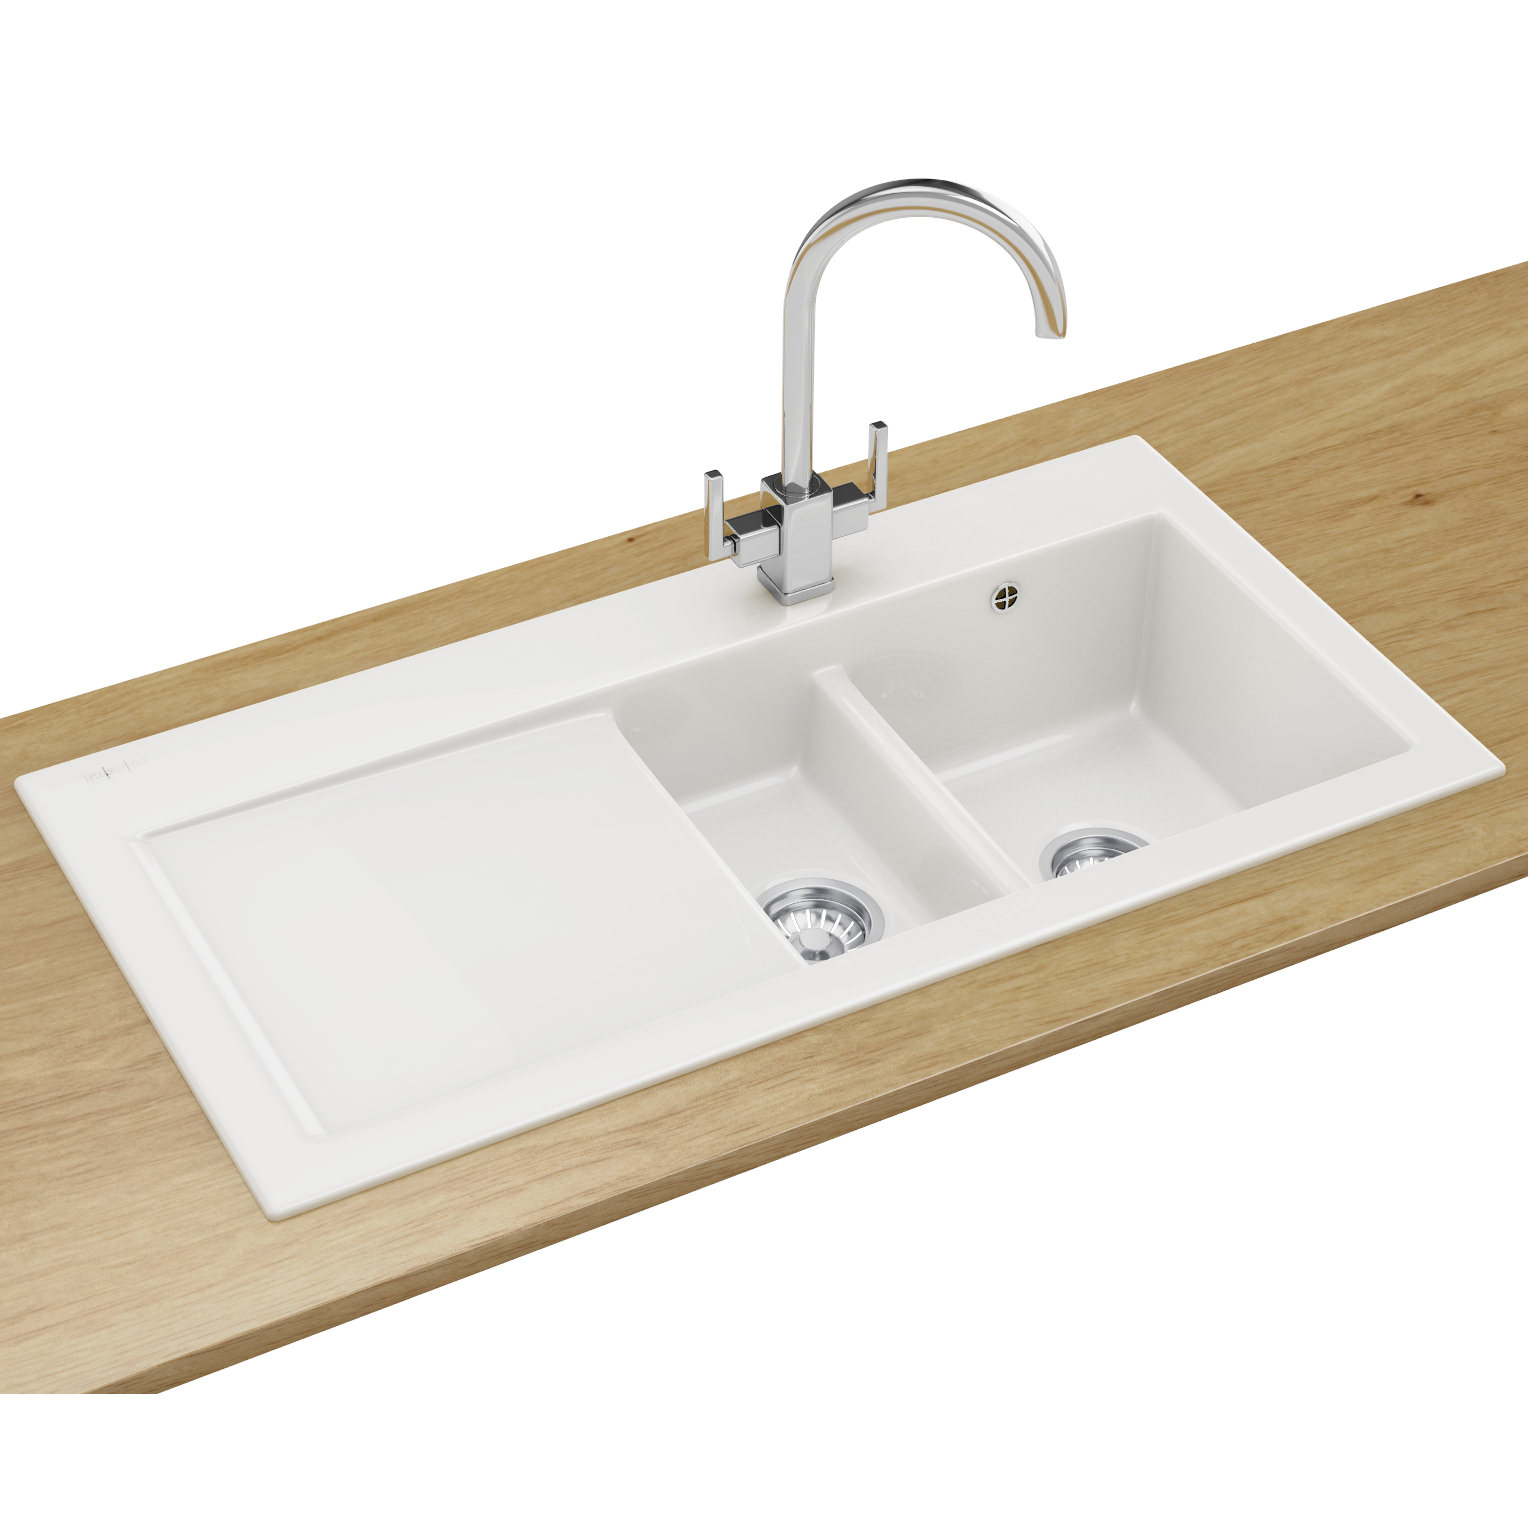 Franke Ceramic Kitchen Sinks Uk